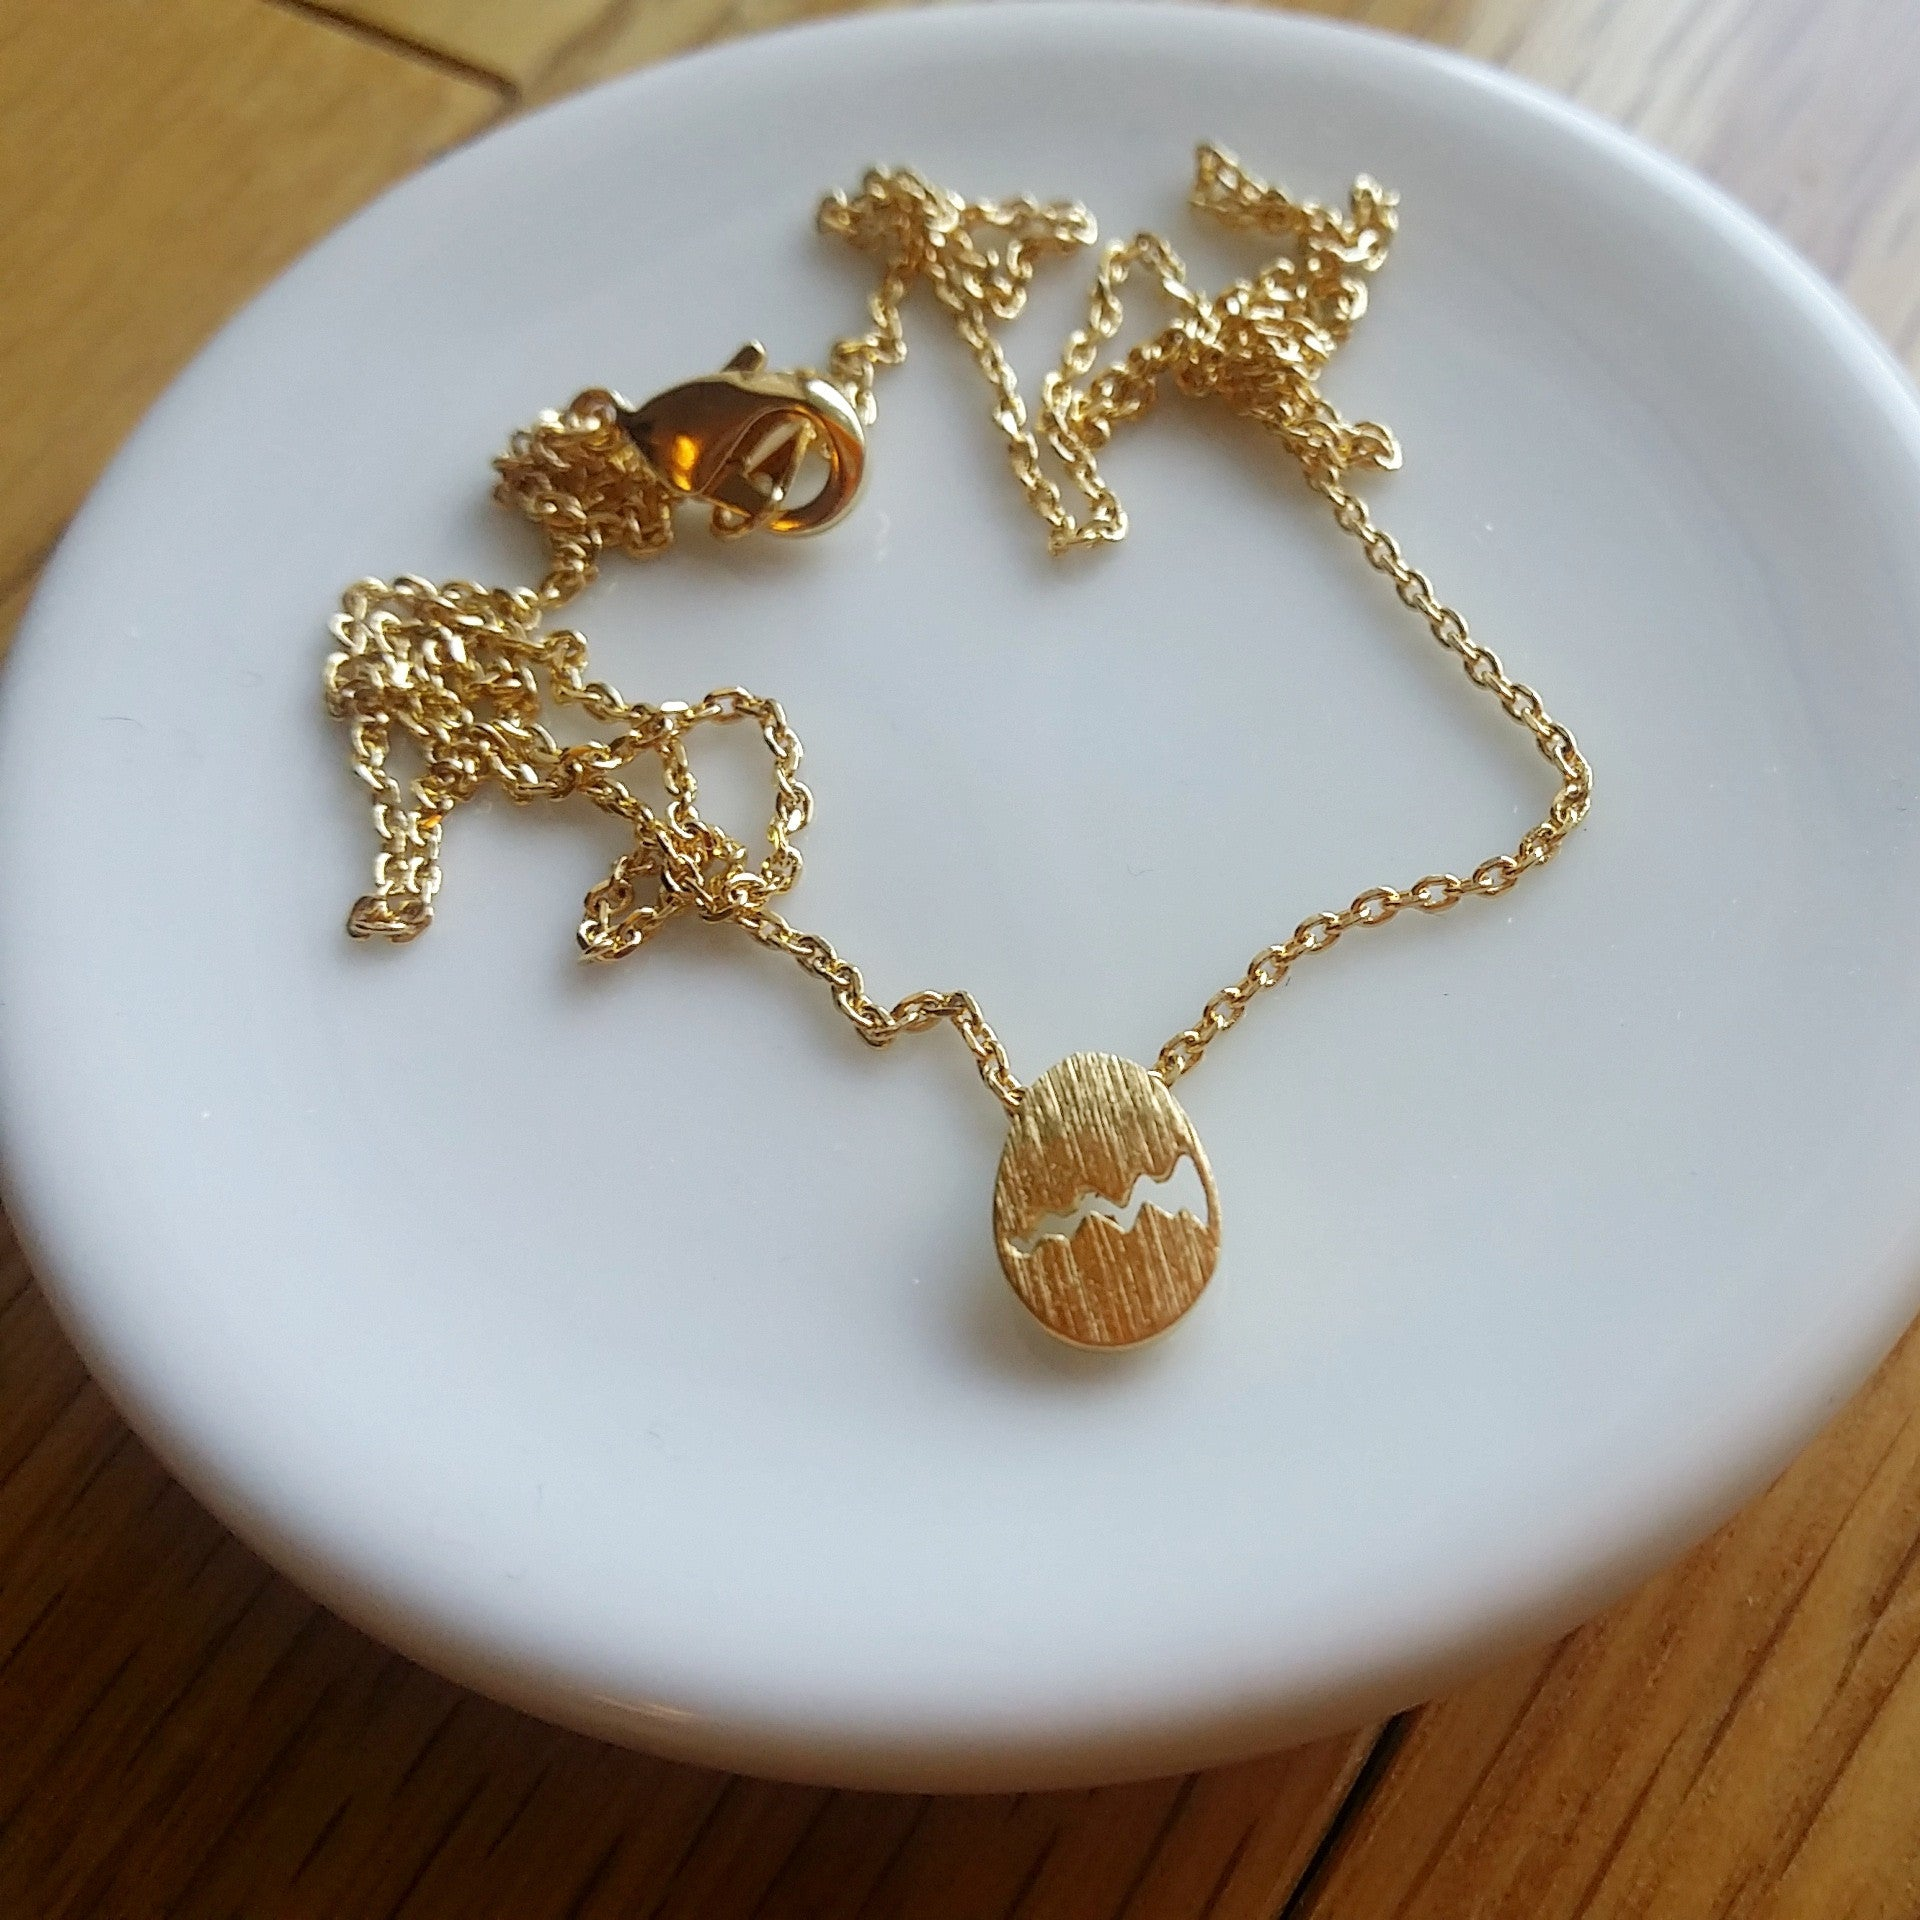 Cracked Egg Necklace